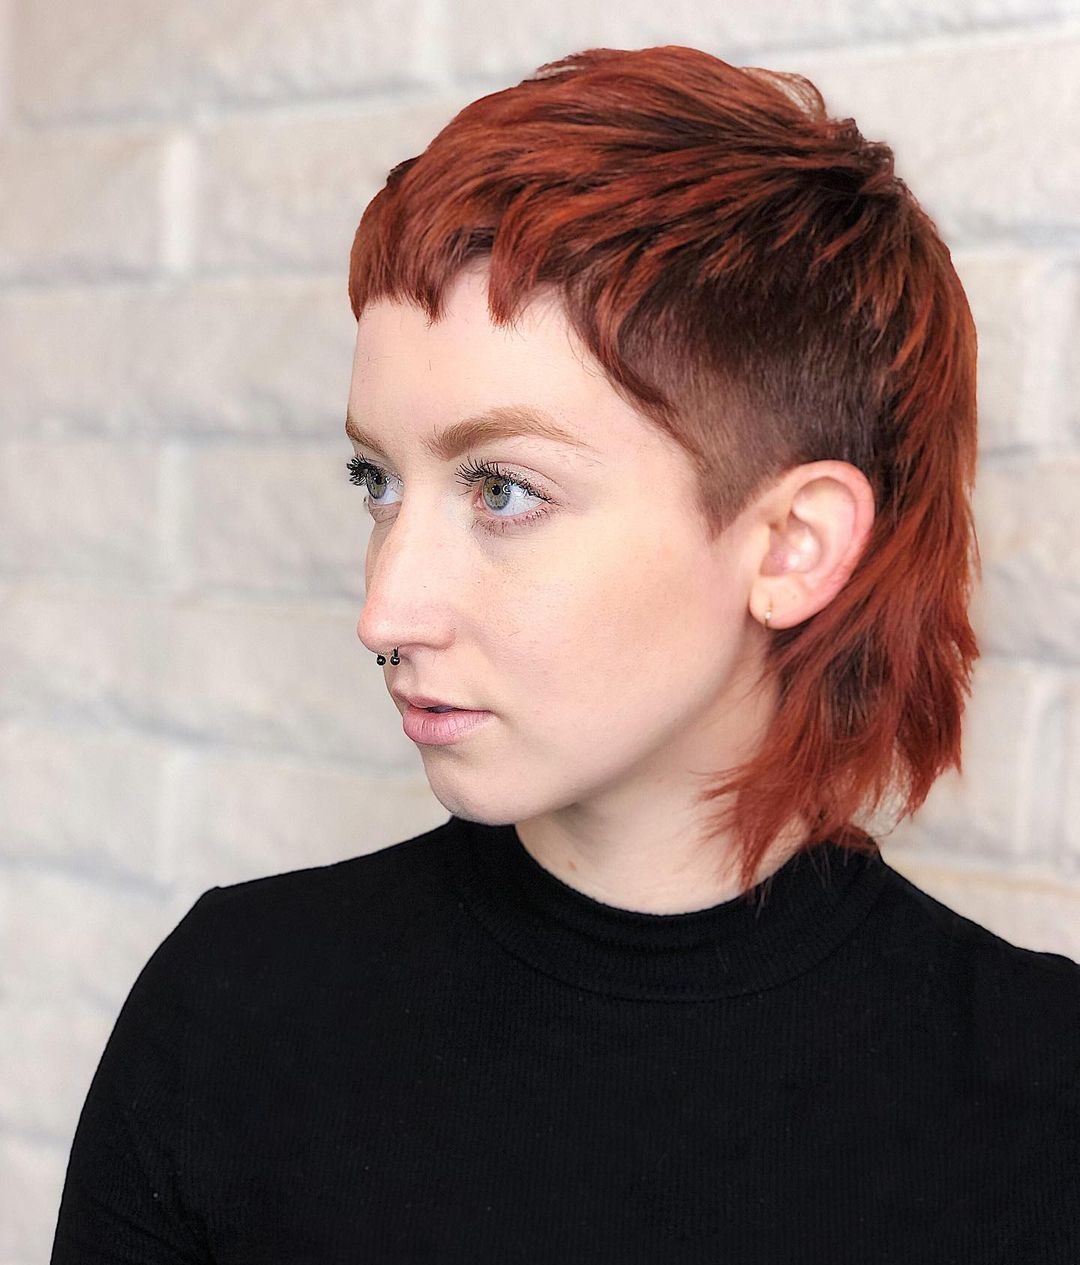 Red Hair Tones for Gray Eyes